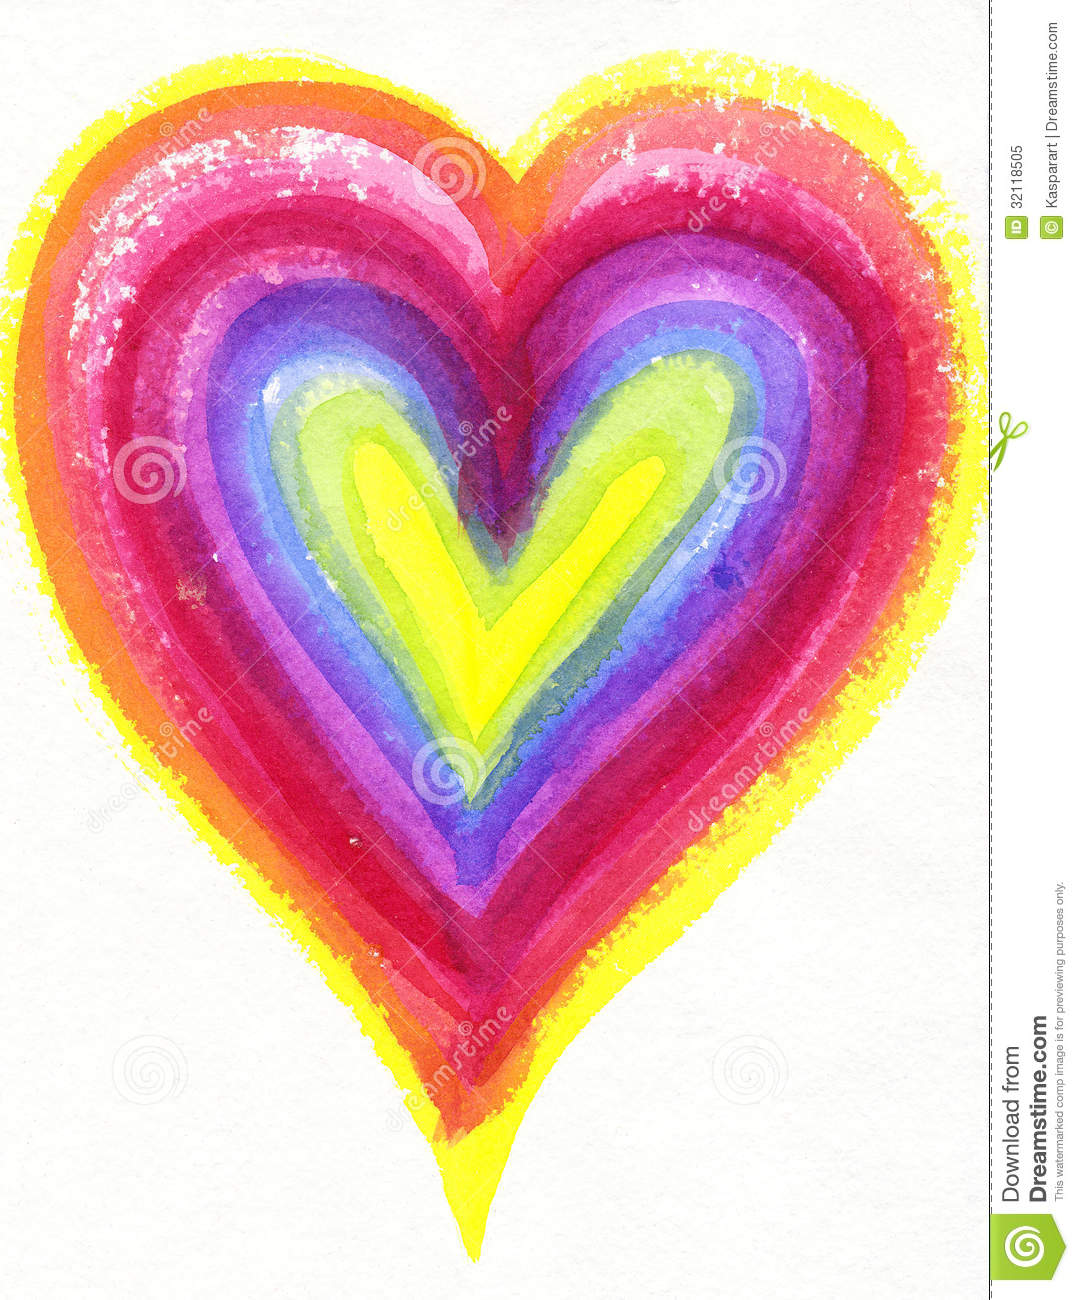 watercolor painting of a rainbow heart royalty free stock photo